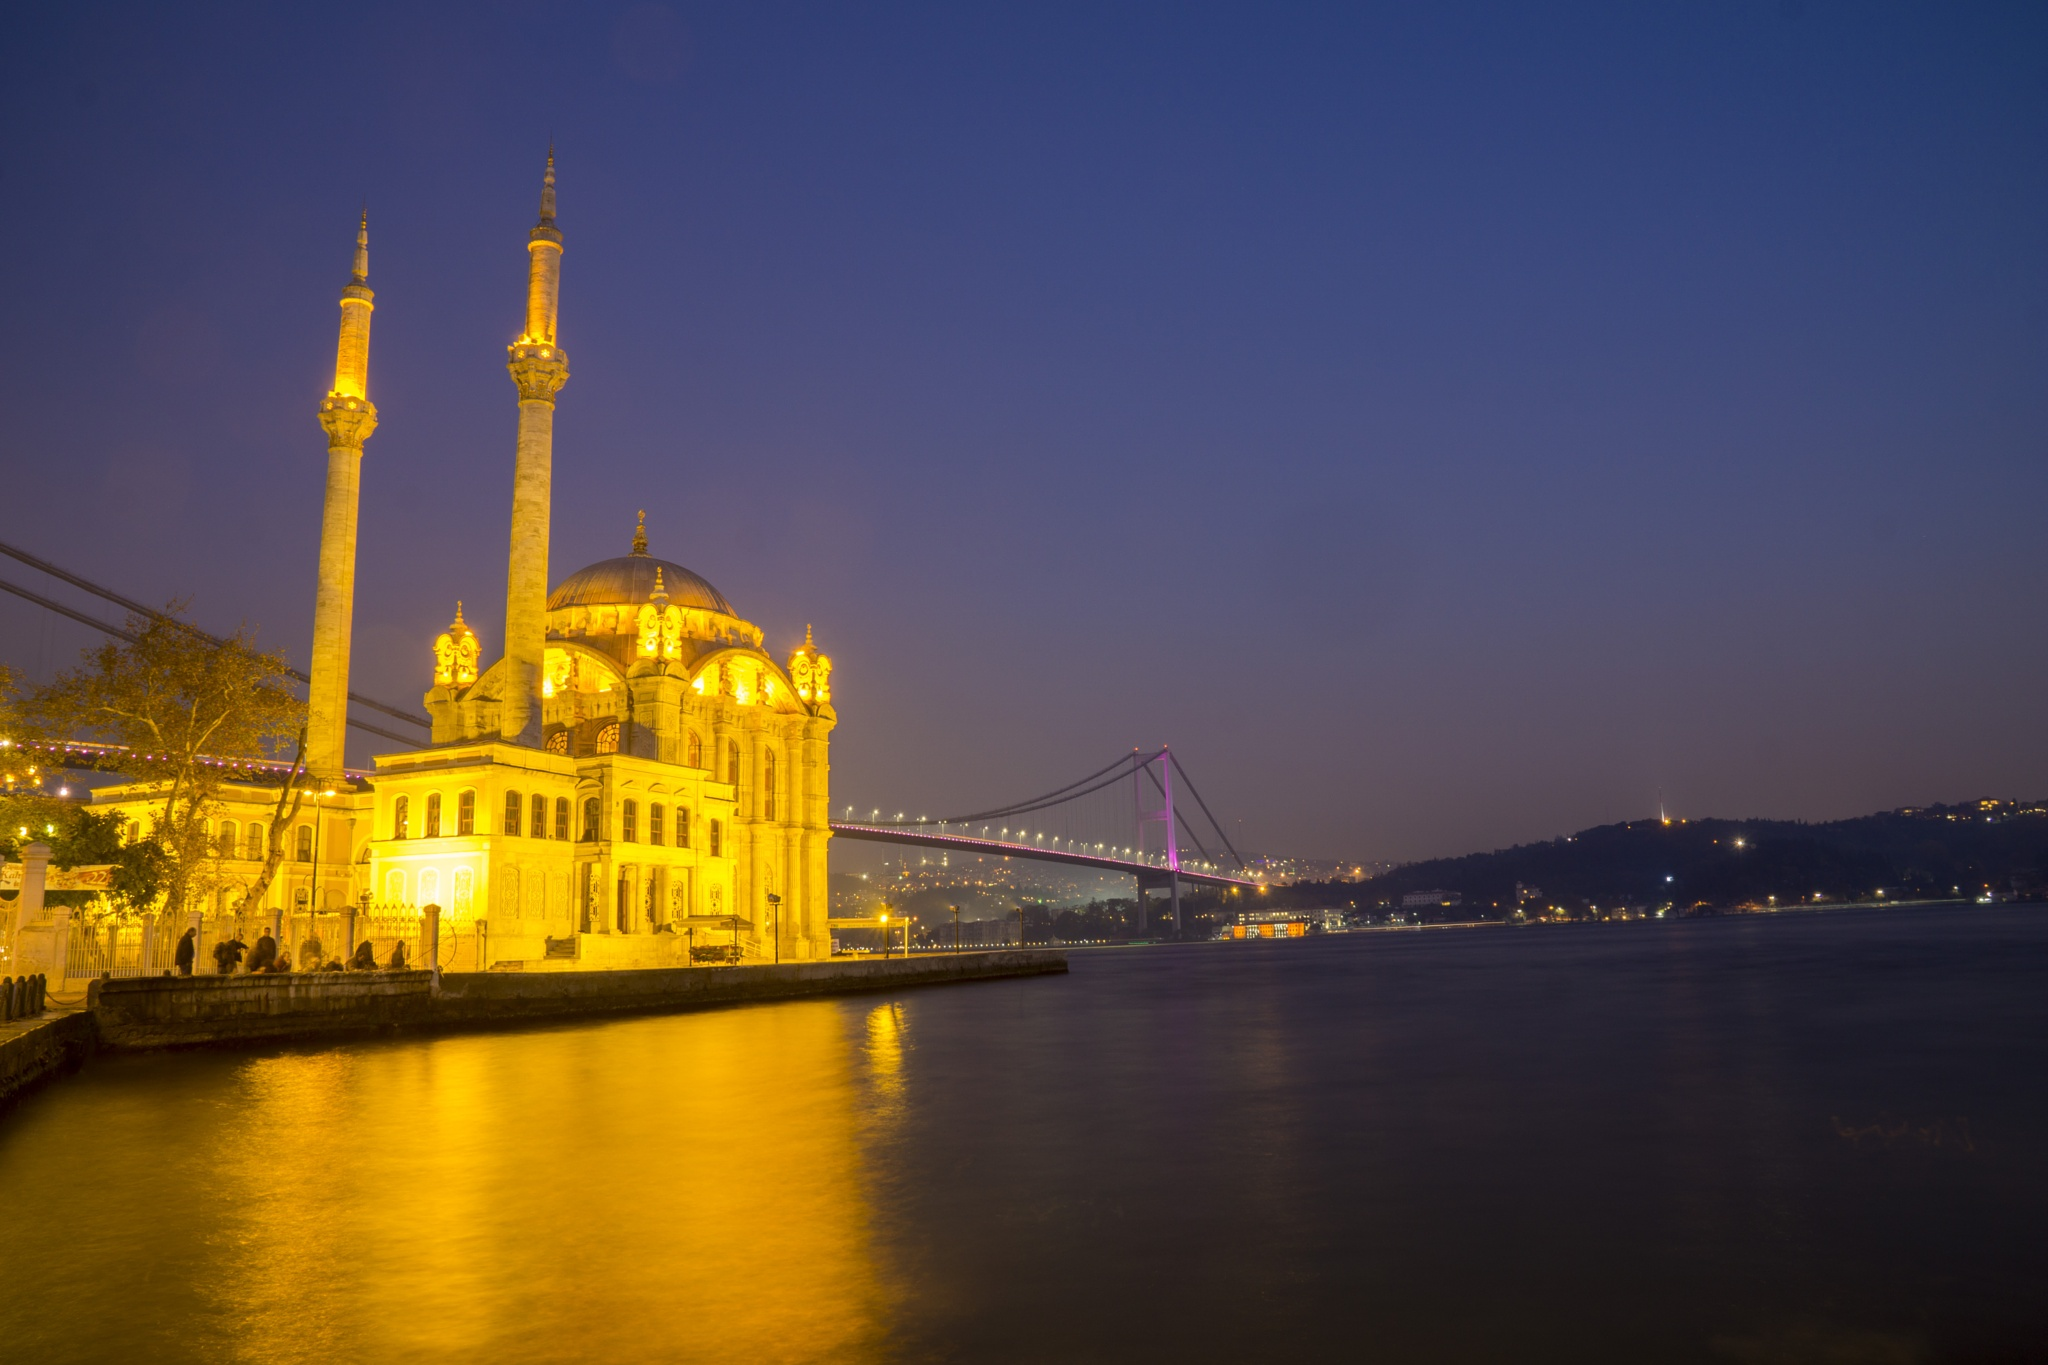 Ortakoy Mosque by lizardofthewisard